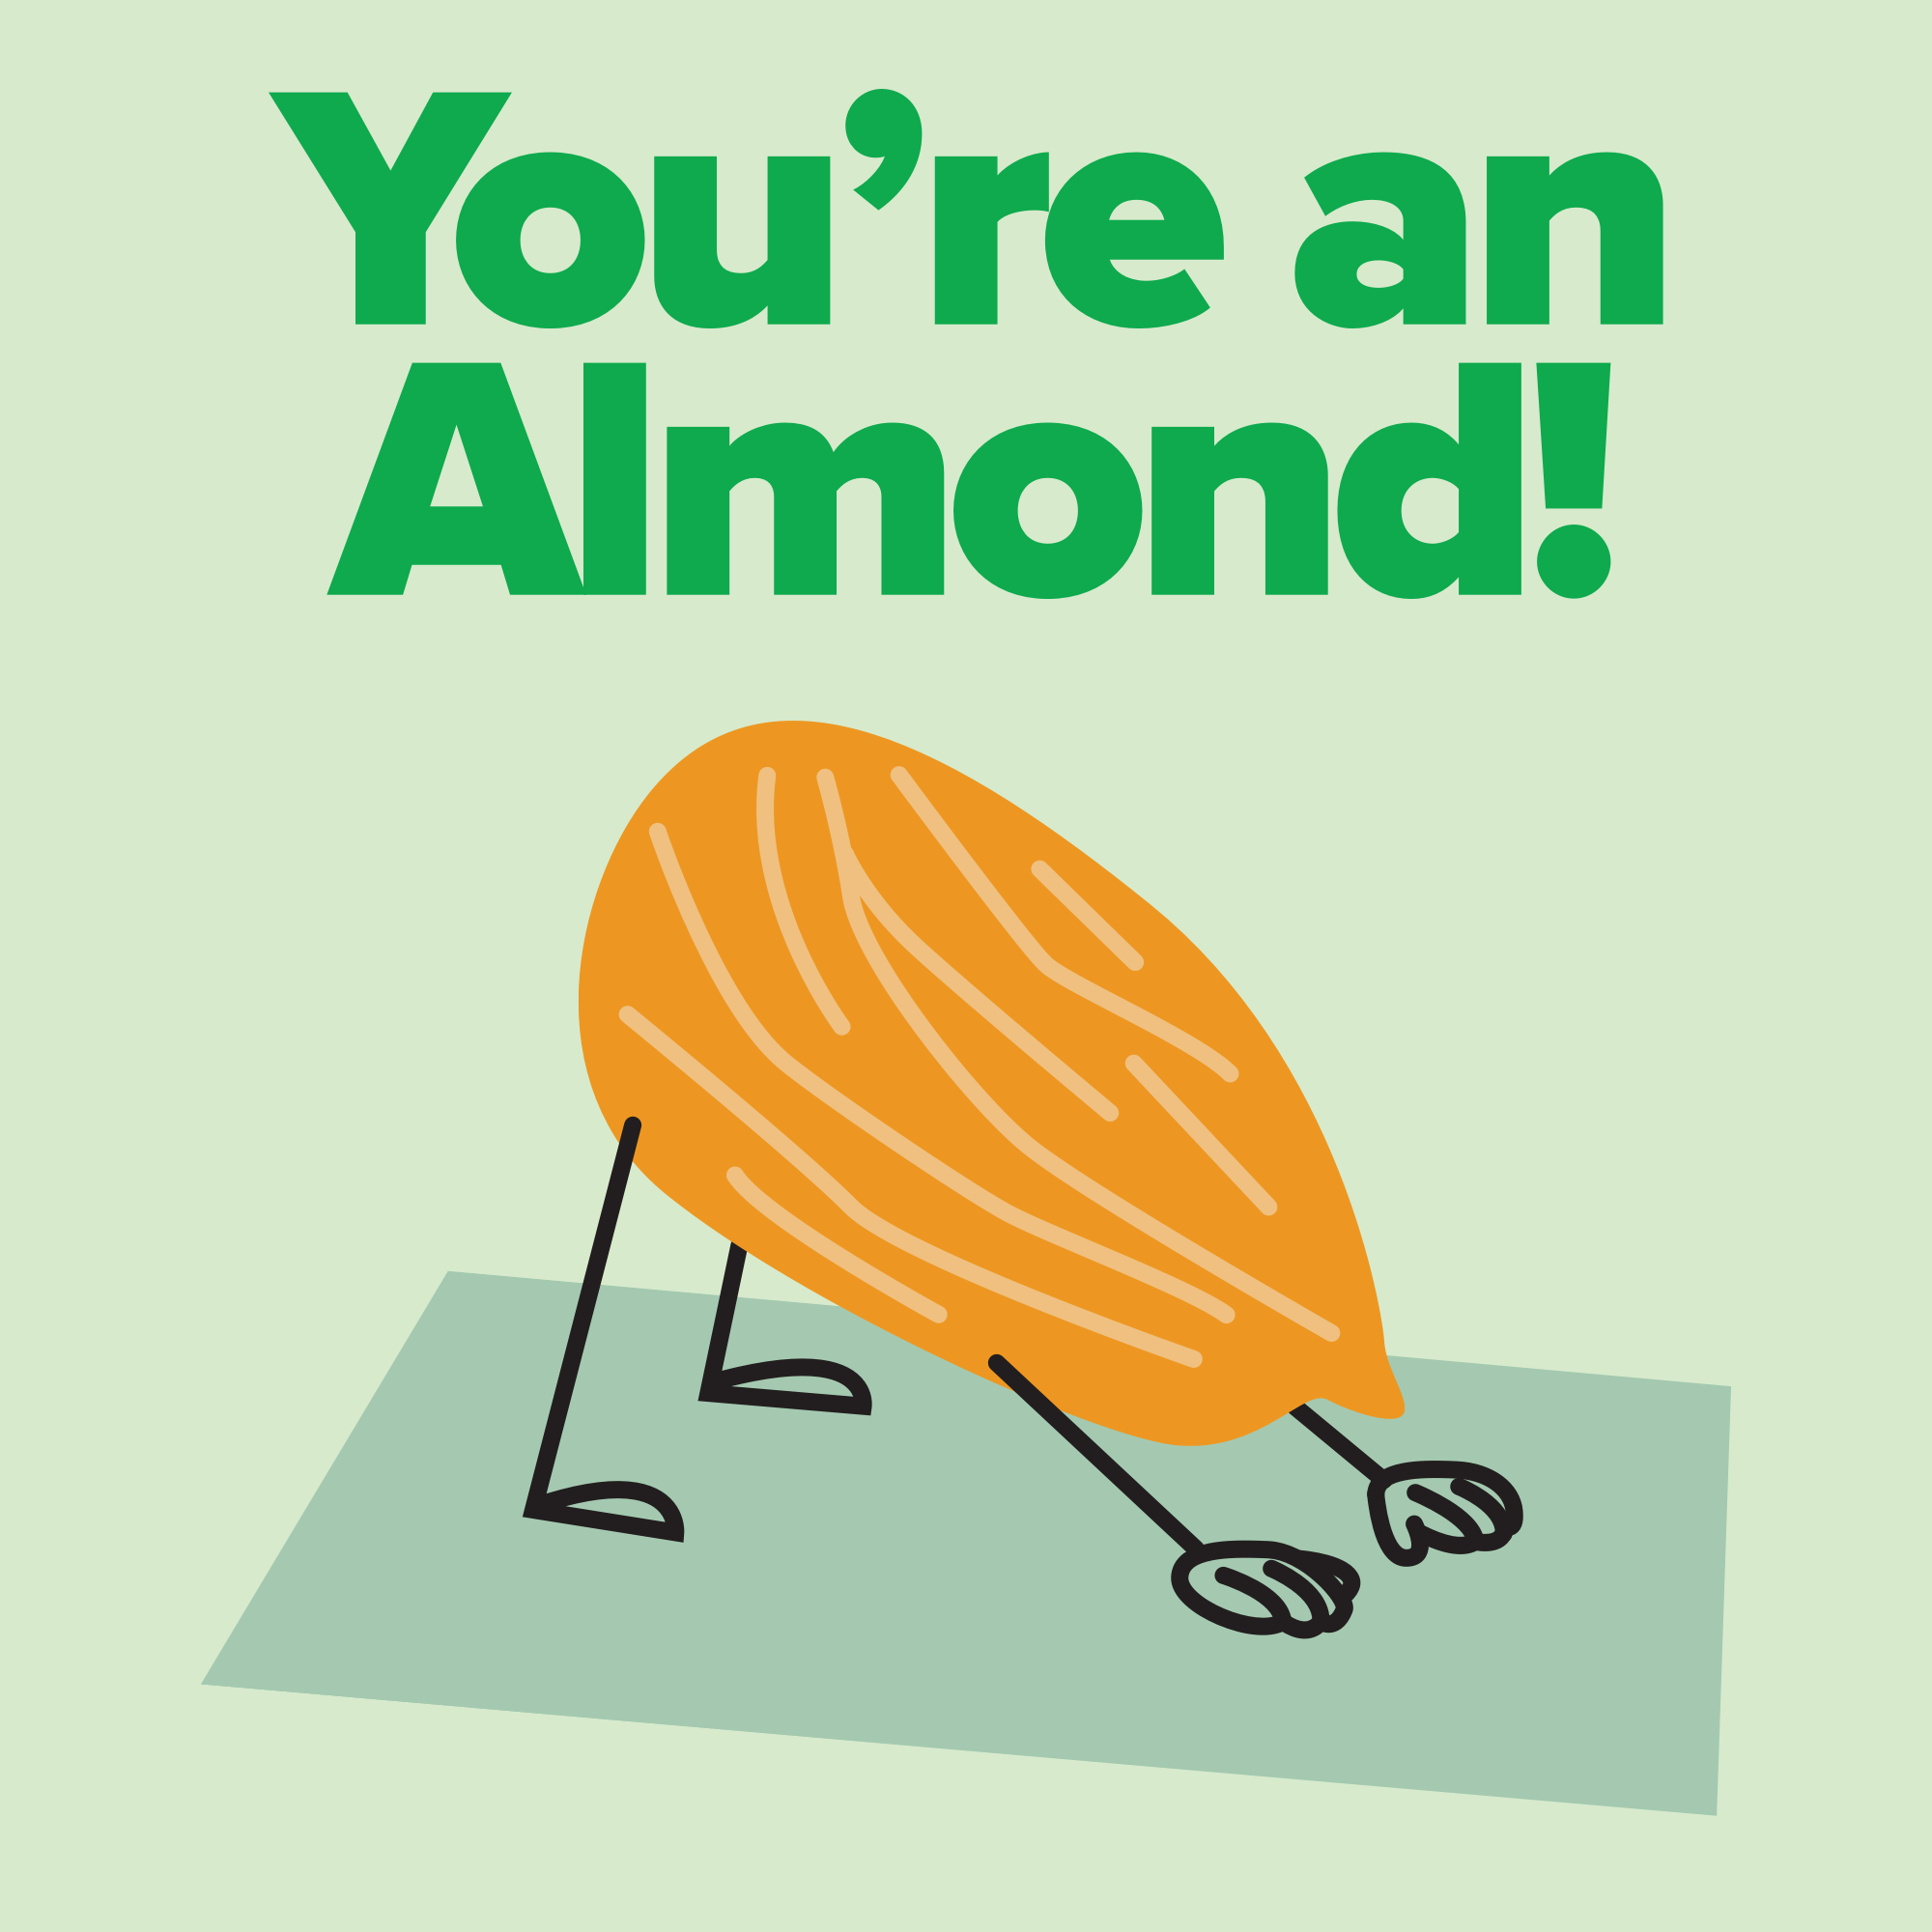 You're an Almond!